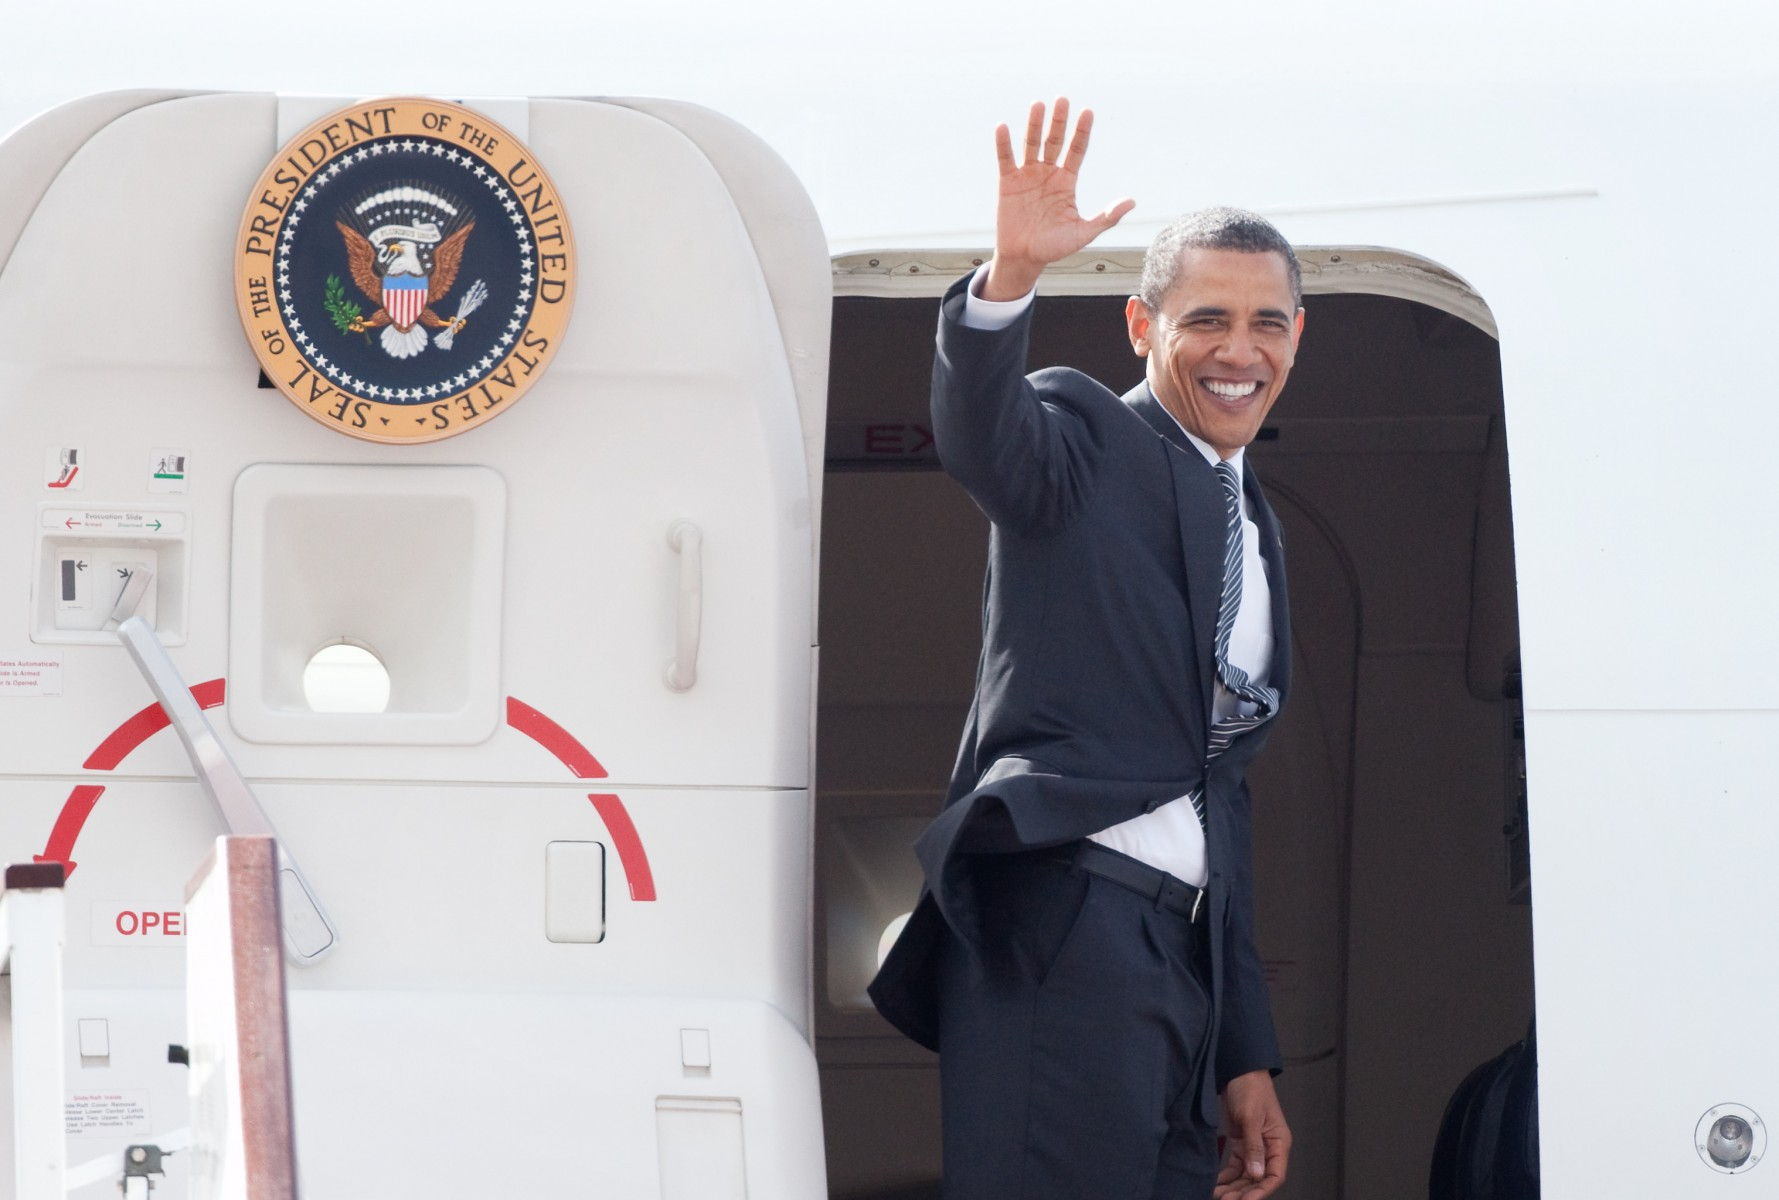 Since 2008, the US President has used Stansted for visits to the UK.